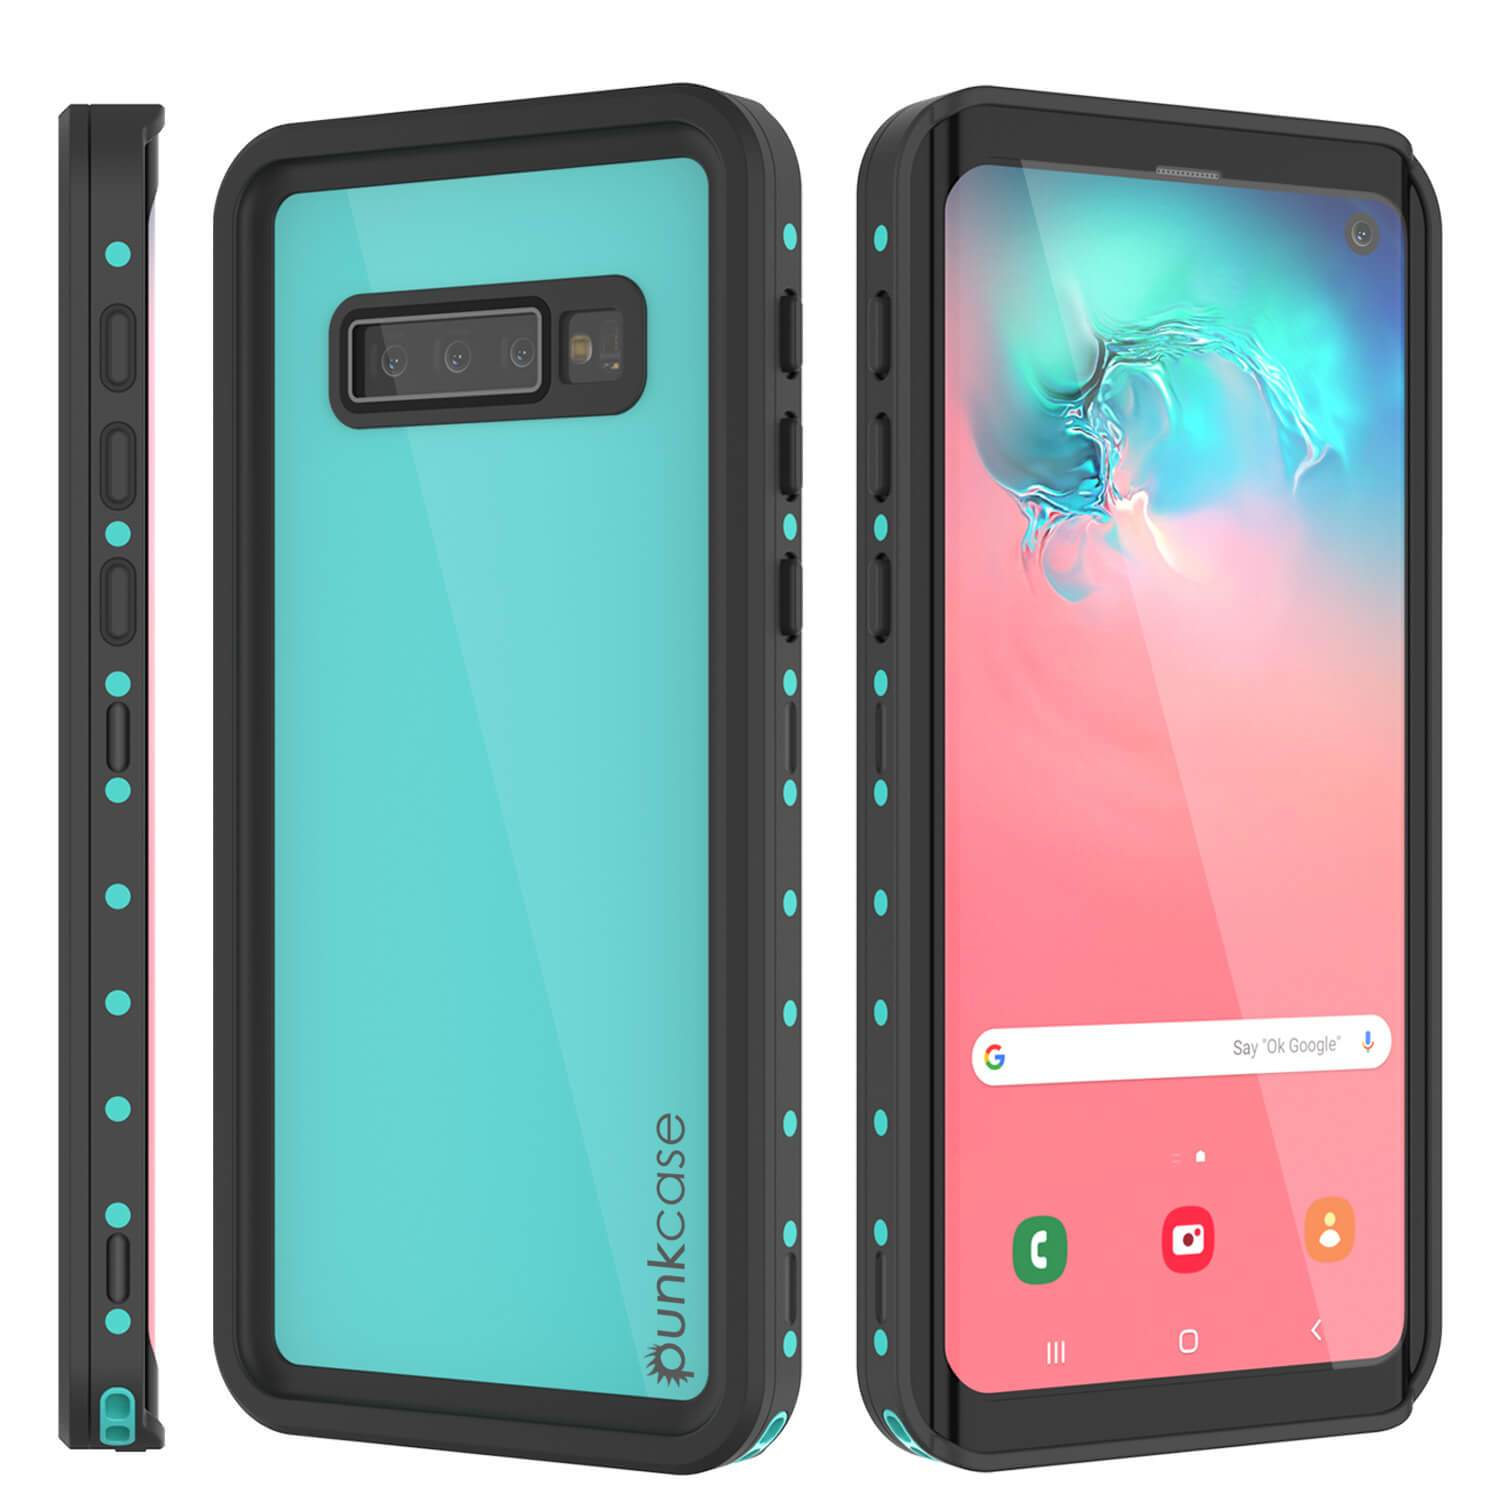 Galaxy S10 Waterproof Case PunkCase StudStar Teal Thin 6.6ft Underwater IP68 Shock/Snow Proof